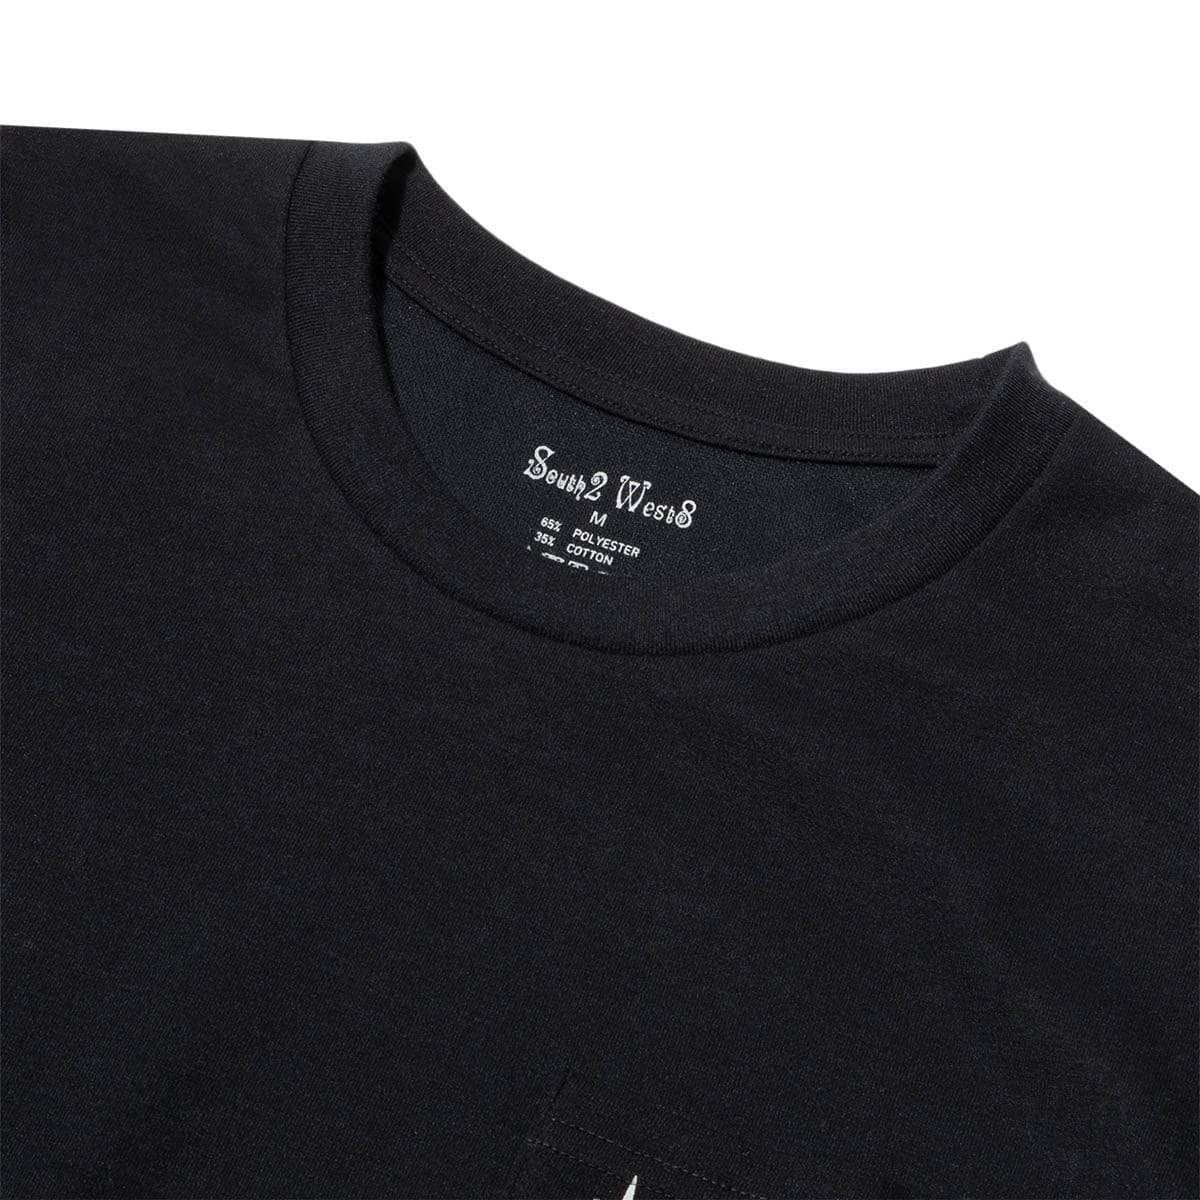 South2 West8 T-Shirts LS ROUND POCKET TEE